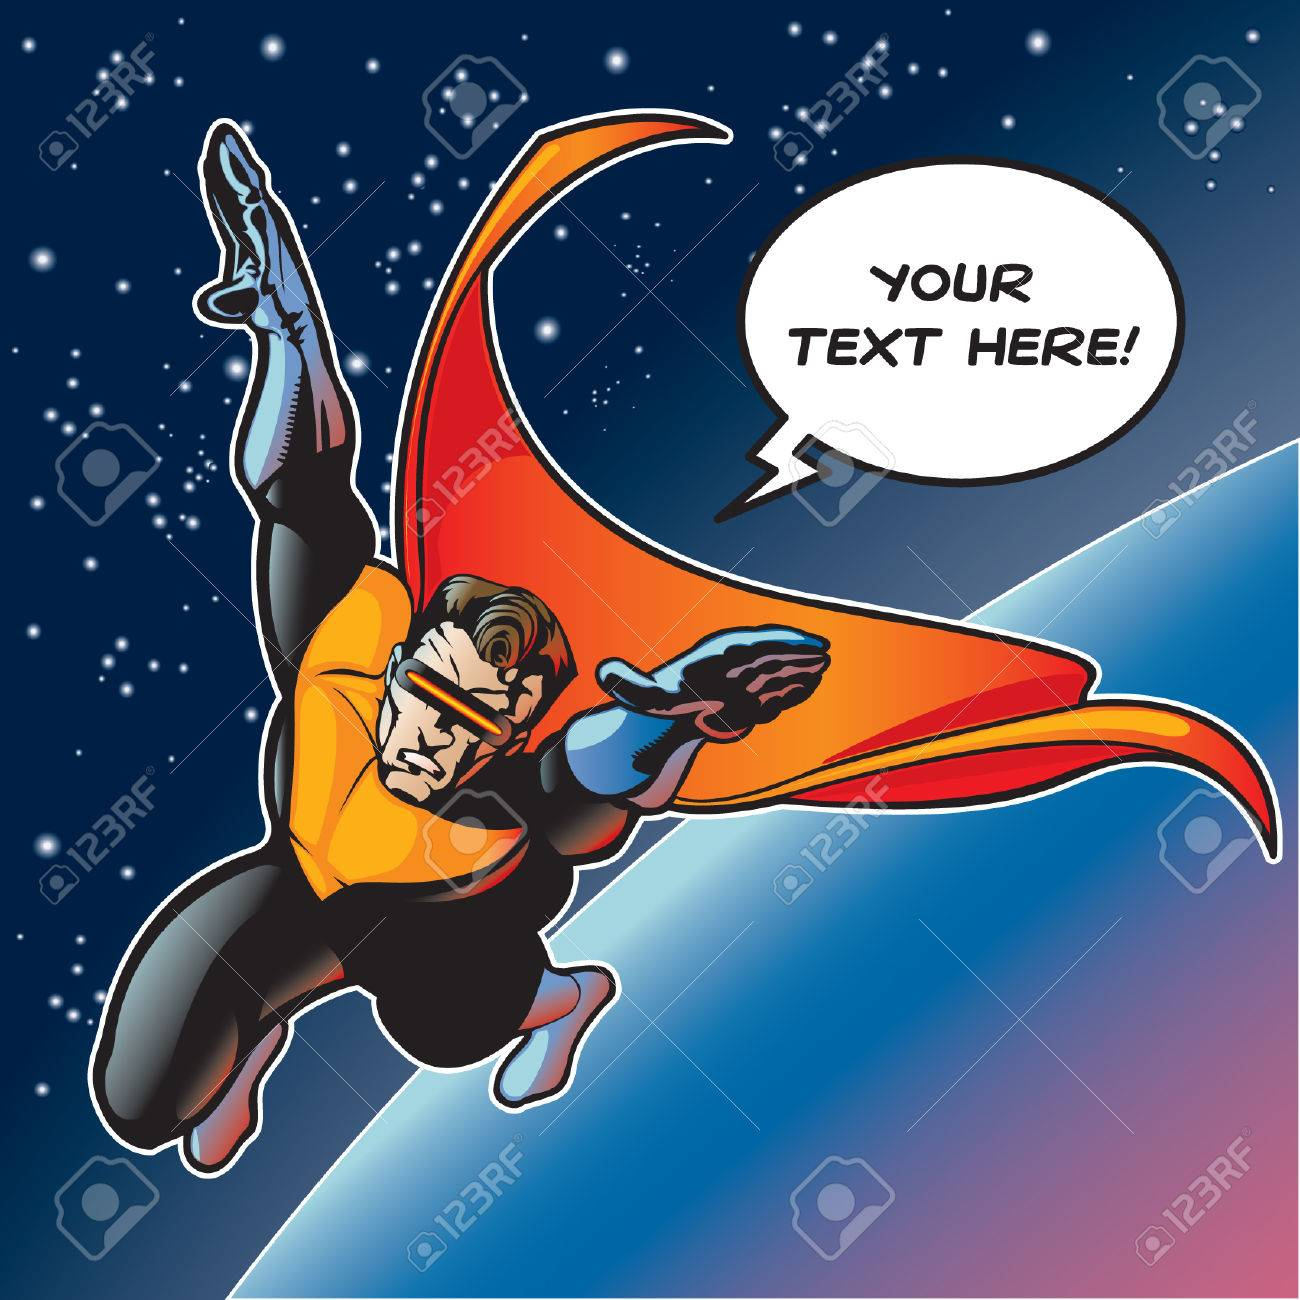 hero with cape flying above a planet. Vector file is layered so visor can be removed and eyes can be seen (if needed). Stock Vector - 6338323